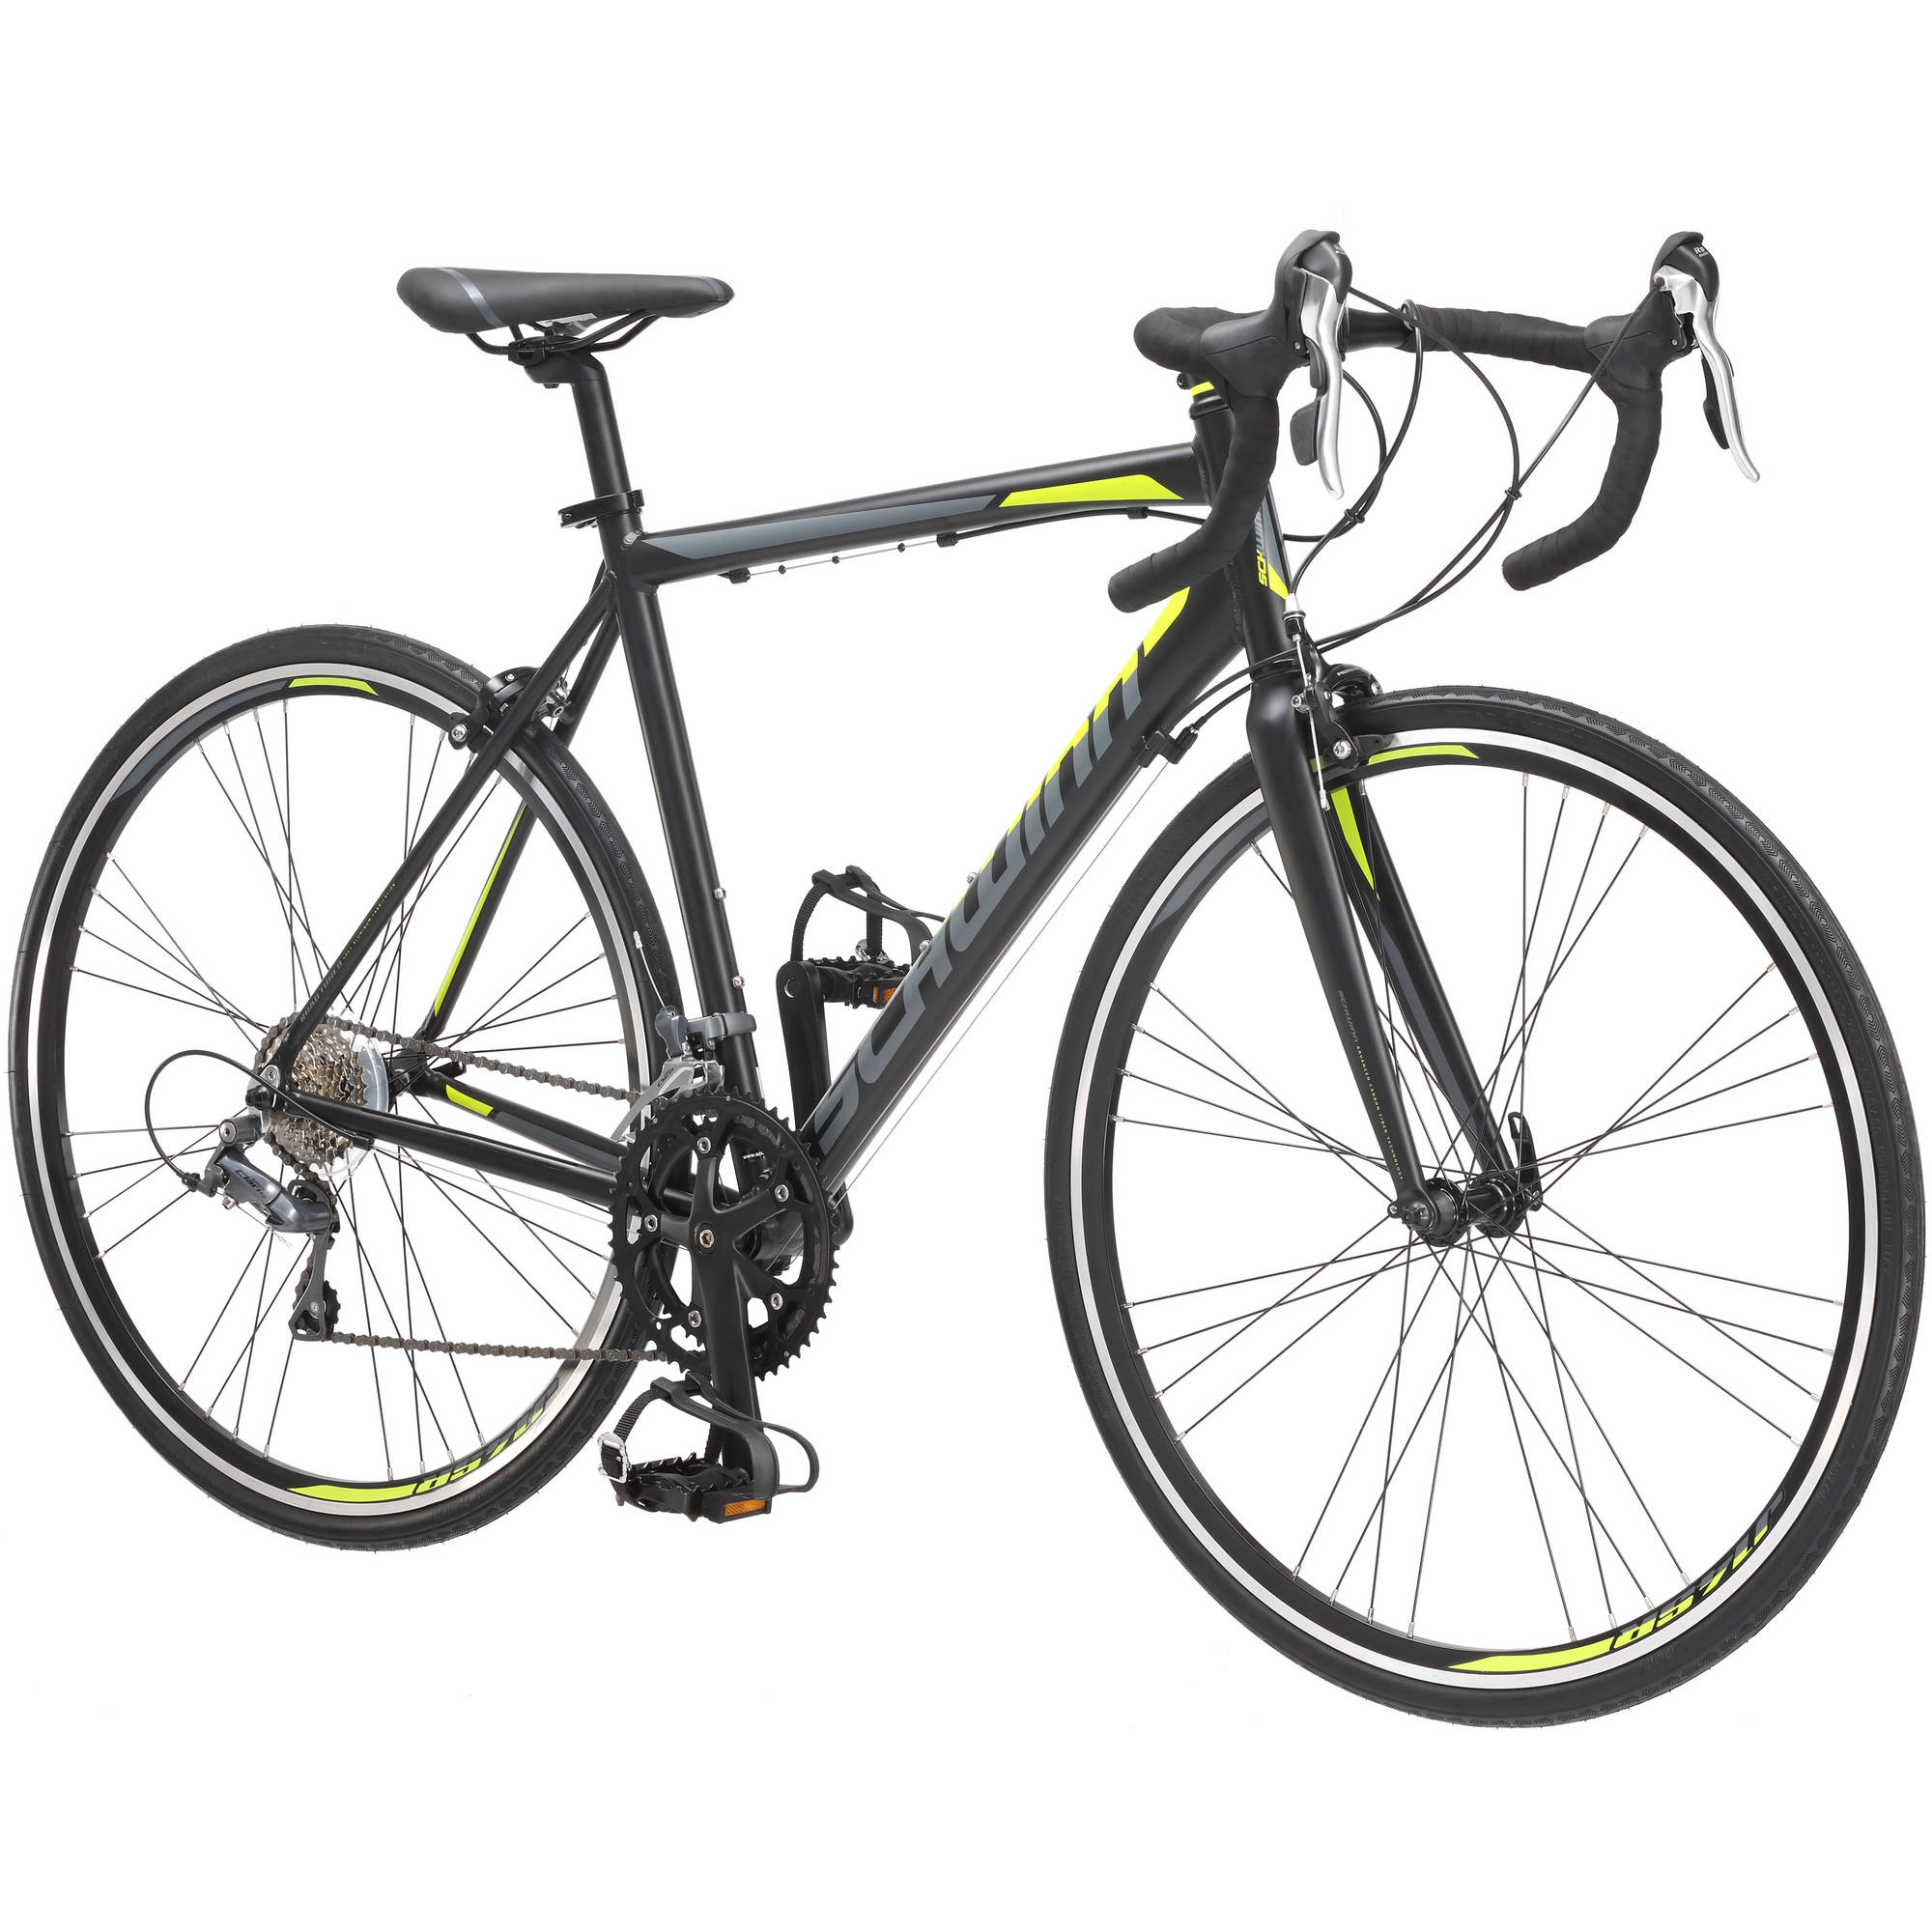 700C Schwinn Phocus 1600 Road Bike, Matte Black